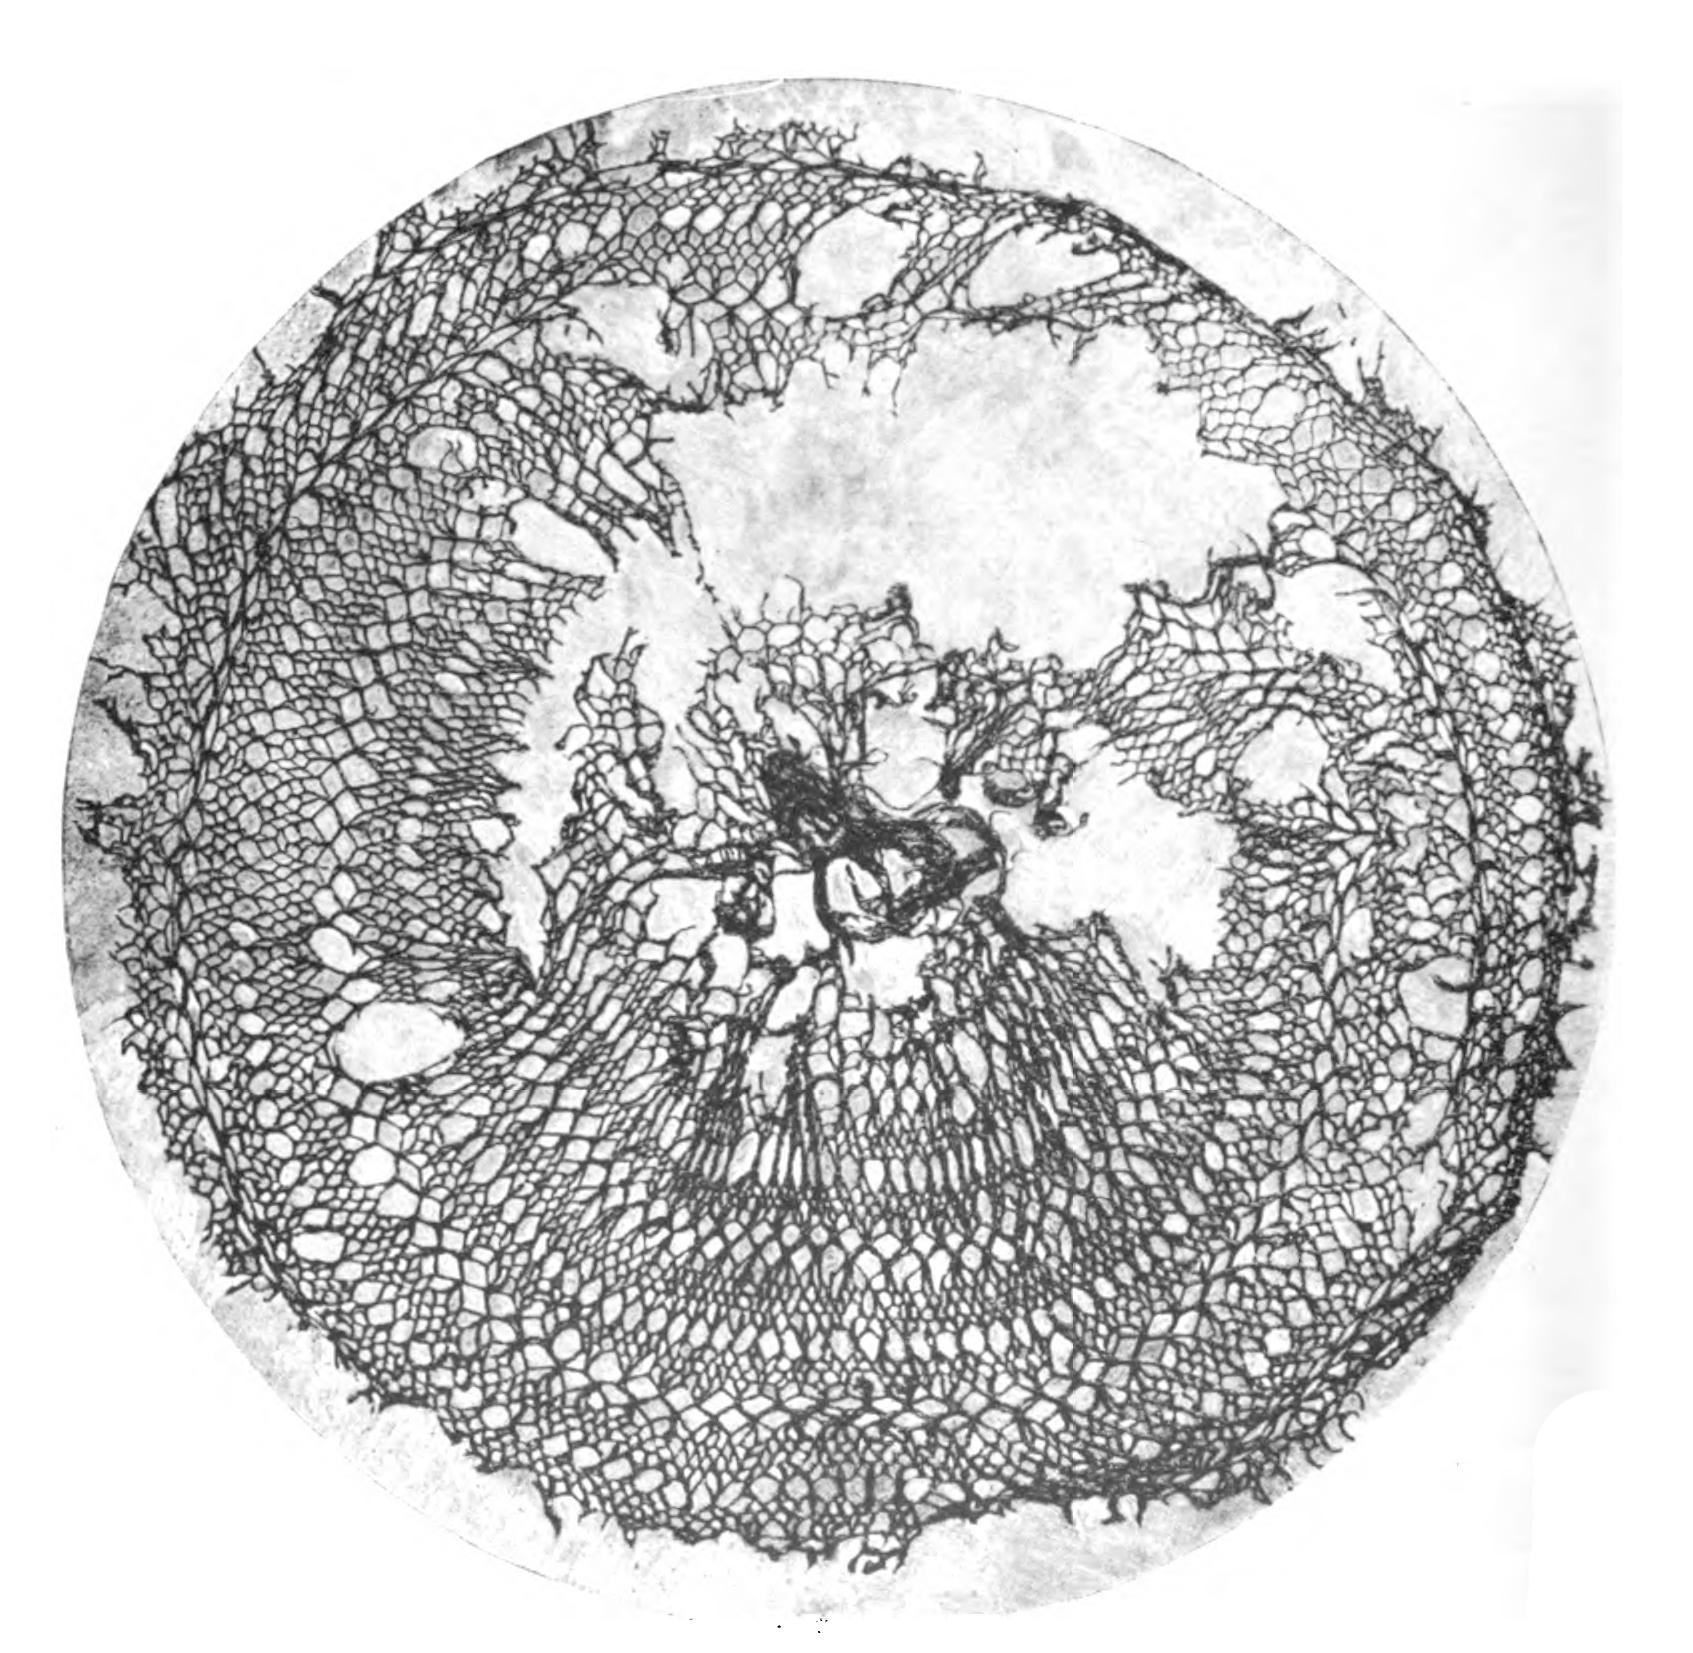 An ancient lace hairnet specimen from a Roman cemetery in Middle Egypt Image from: A history of hand-made lace: Dealing with the origin of lace, the growth of the great lace centers, the mode of manufacture, the methods of distinguishing and the care of various kinds of lace. By Jackson, Emily, Mrs. F. Nevill Jackson. Published 1900. Publisher London: L.U. Gill; New York: C. Scribner's Sons. Retrieved from openlibrary.org